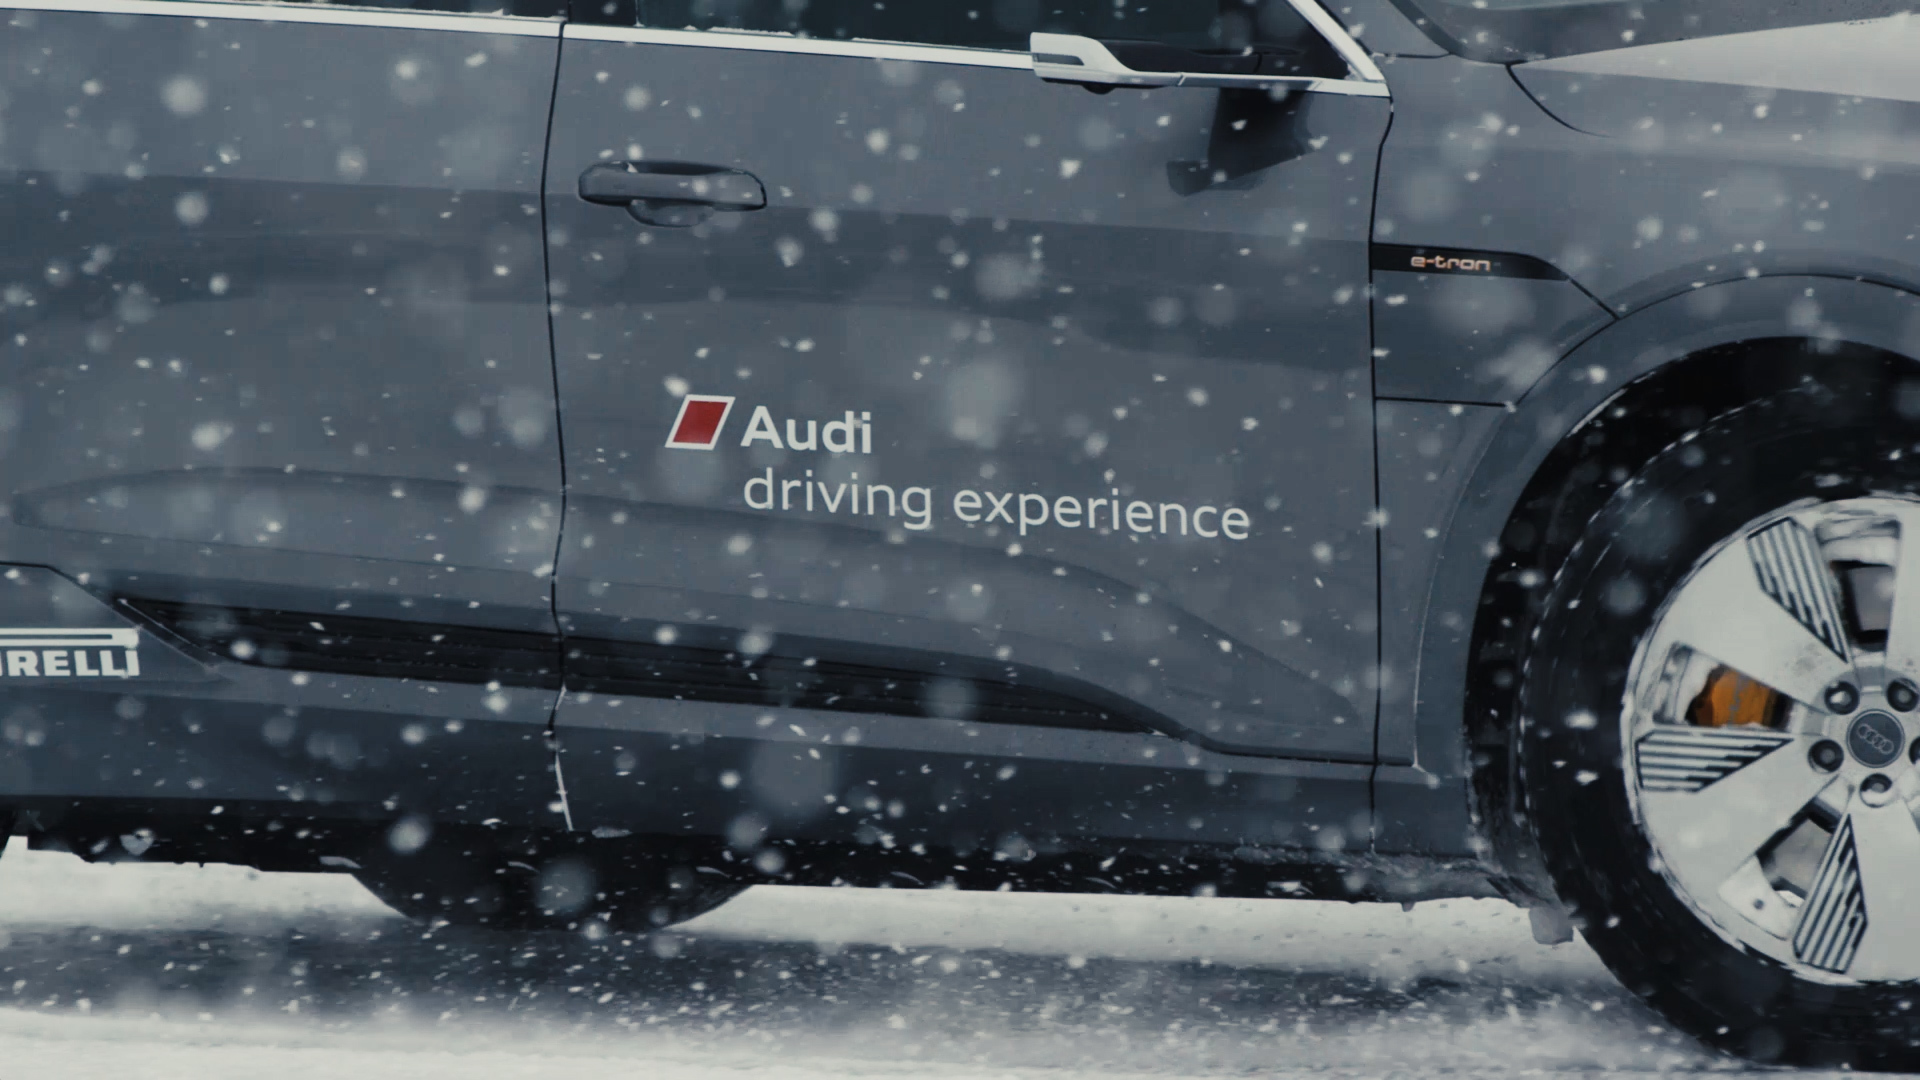 Audi e-tron on snow and ice: Audi driving experience in Sweden